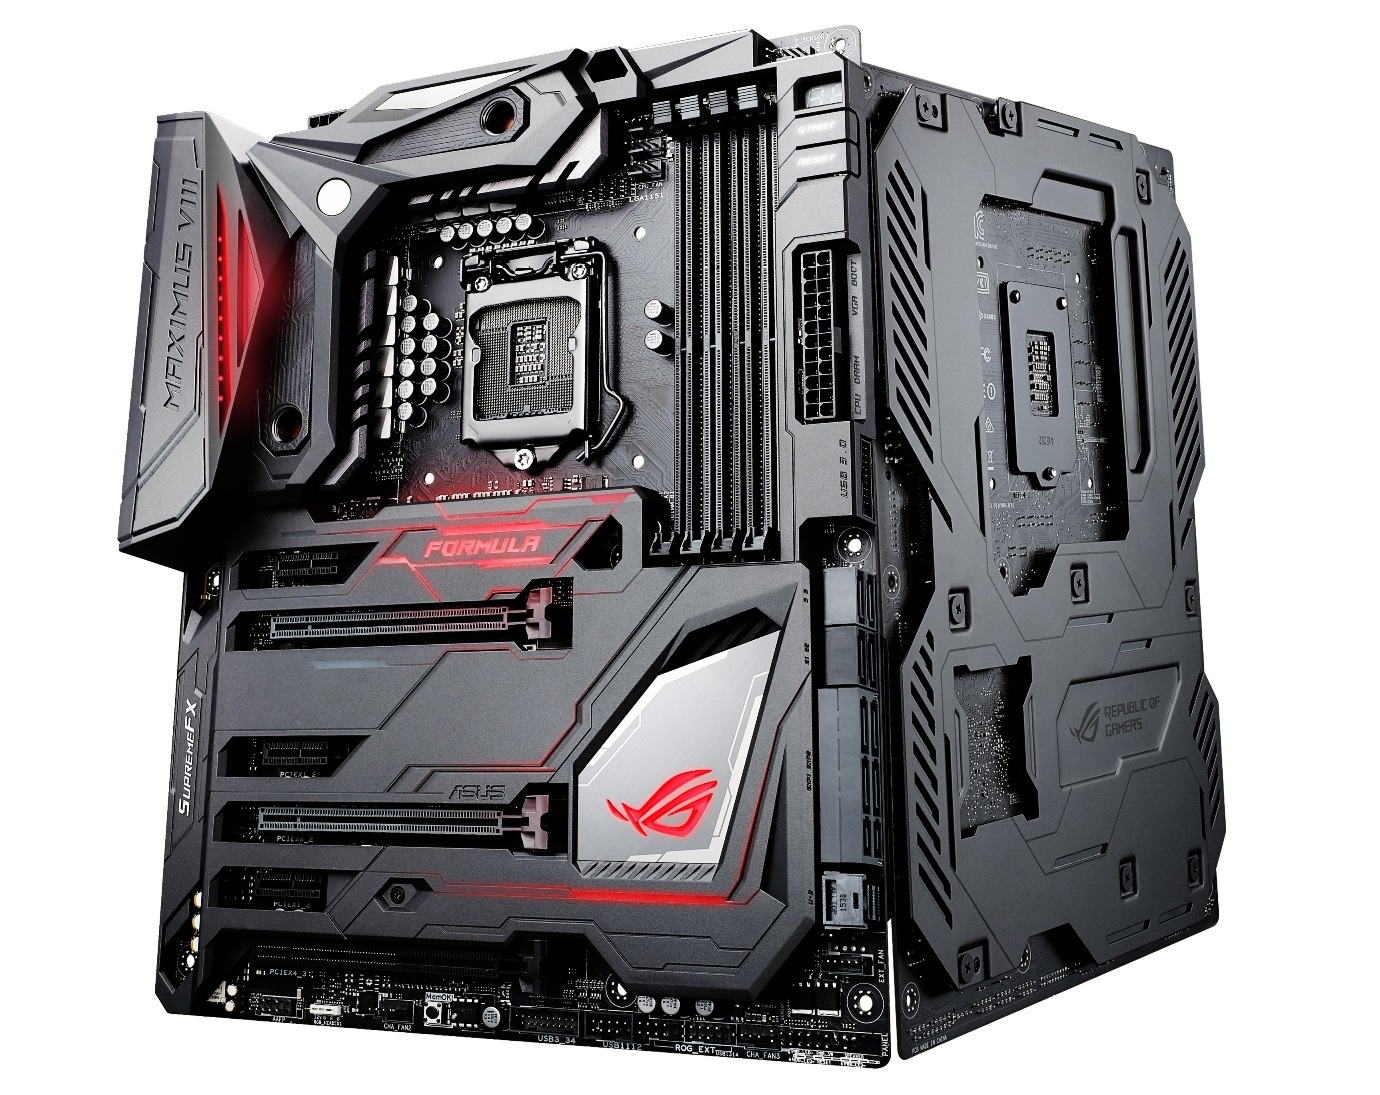 Best-in-class cooling